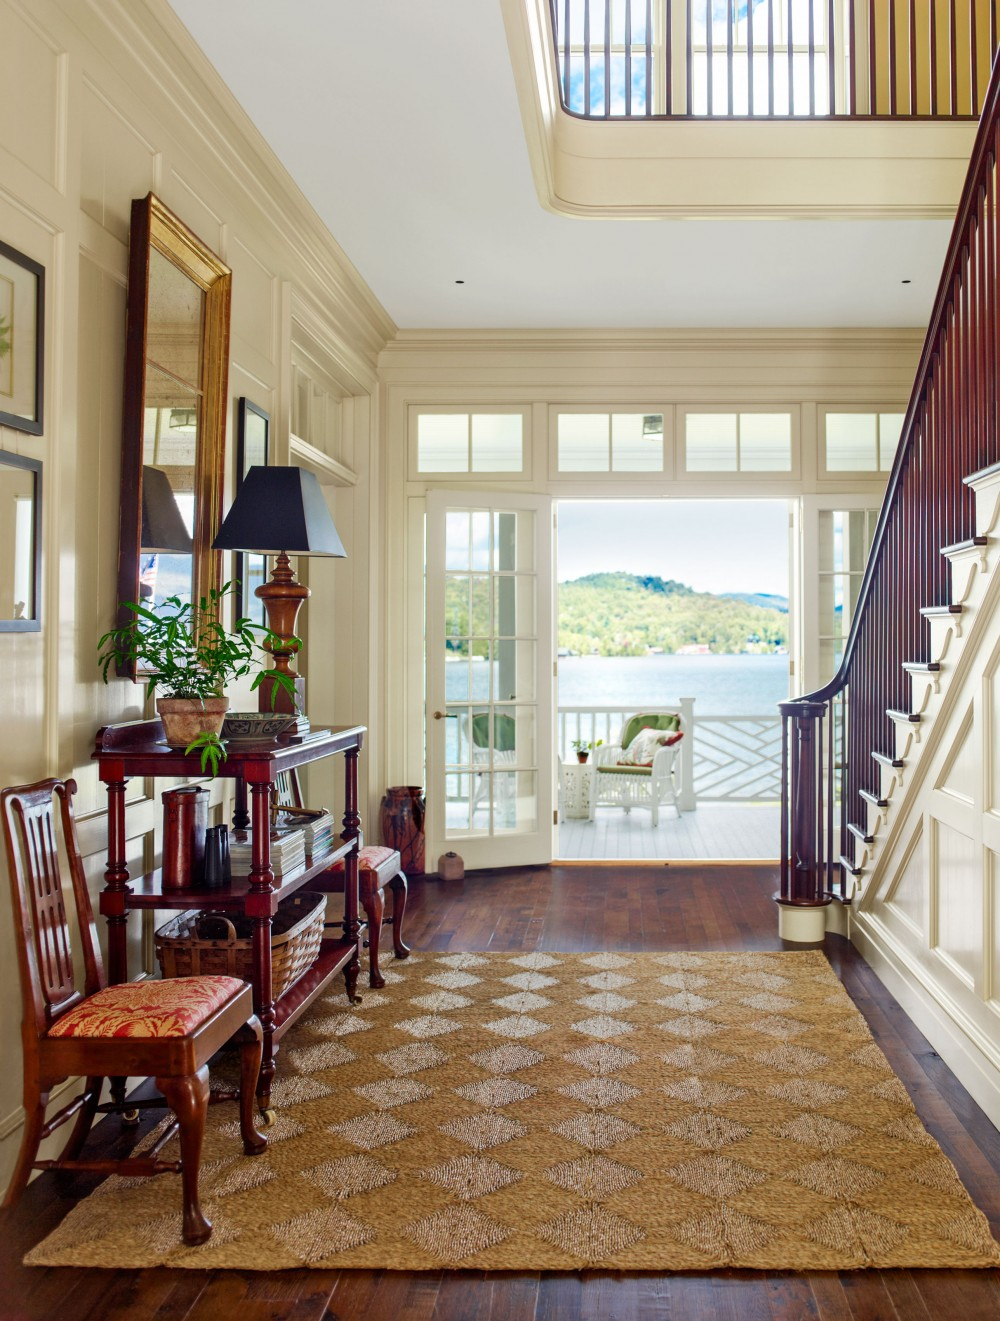 Entrance Foyer Circulation And Balcony In A House : Traditional entrance hall by architectural digest ad